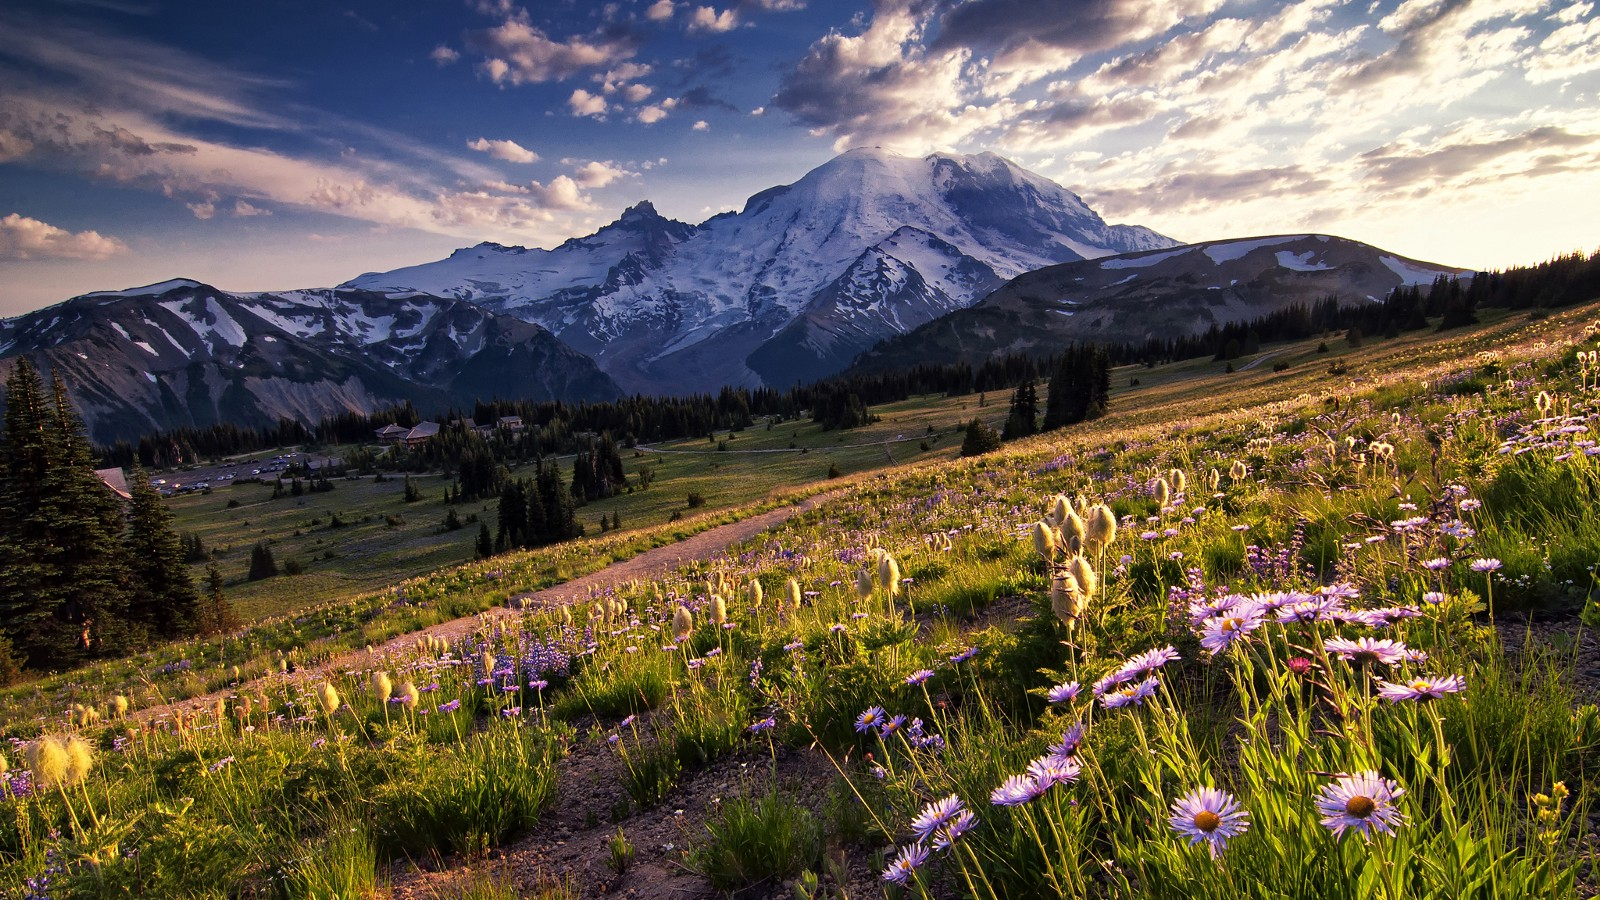 Sunset view at Mount Rainier National Park, Washington